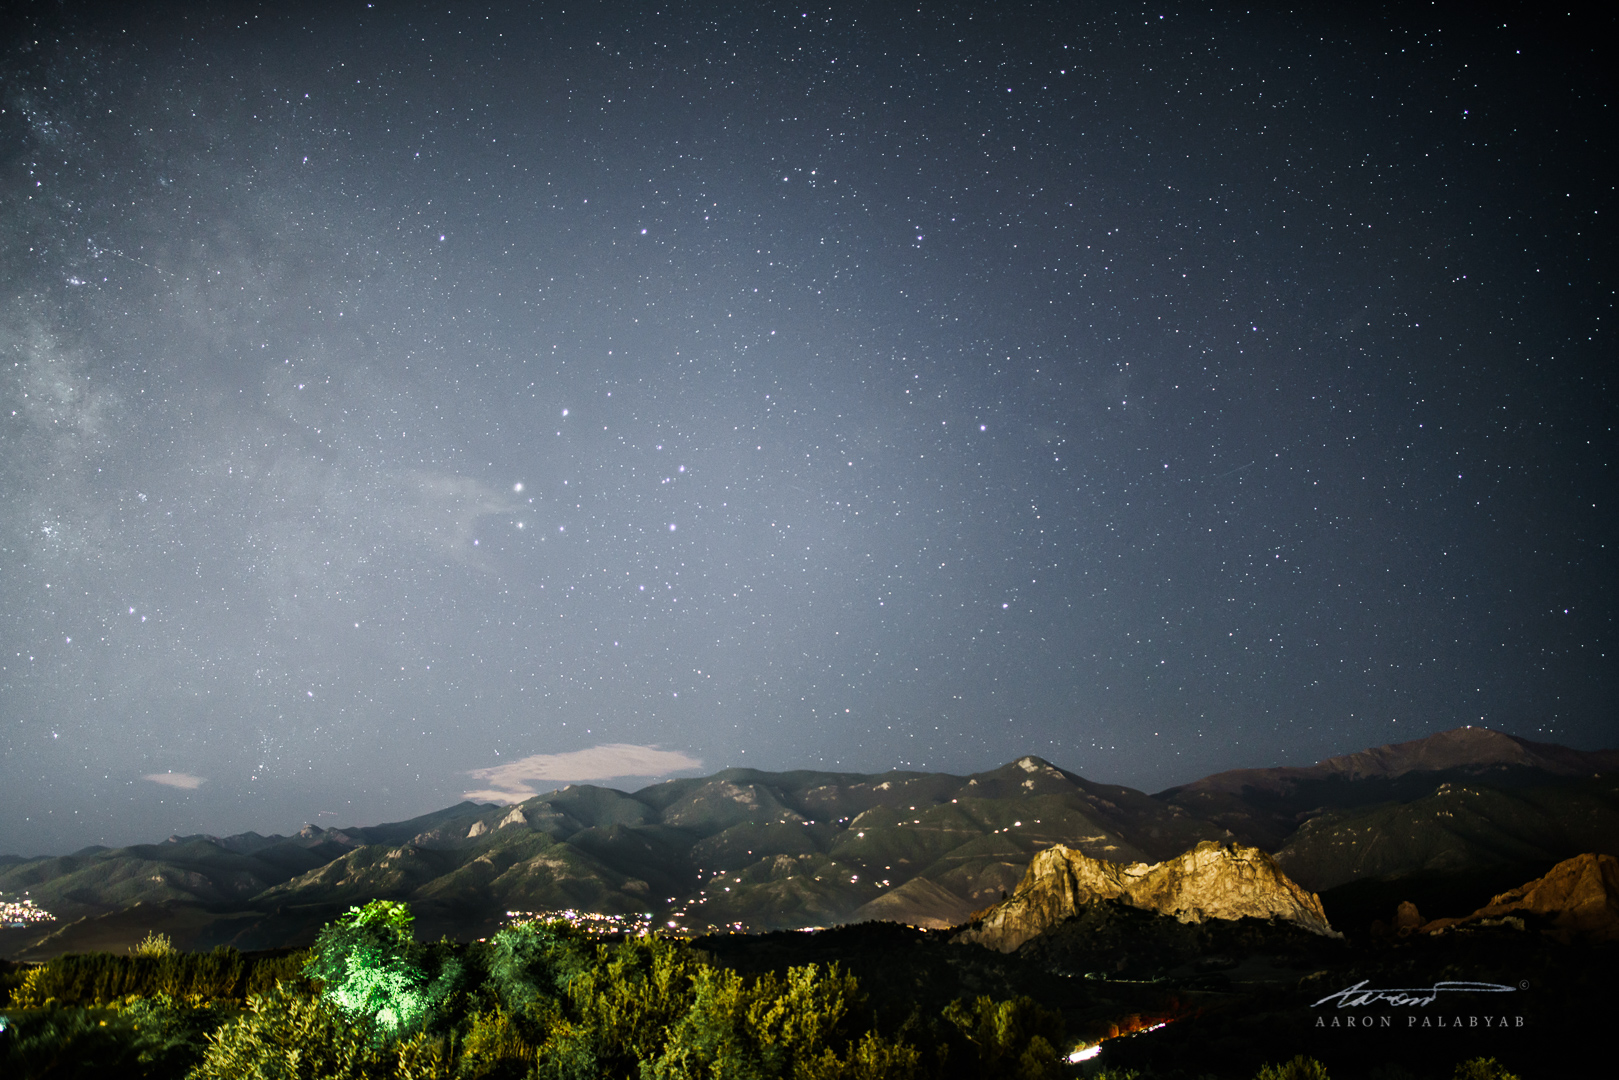 Stars of the Rocky Mountains, with the Milky Way just visible to the left.